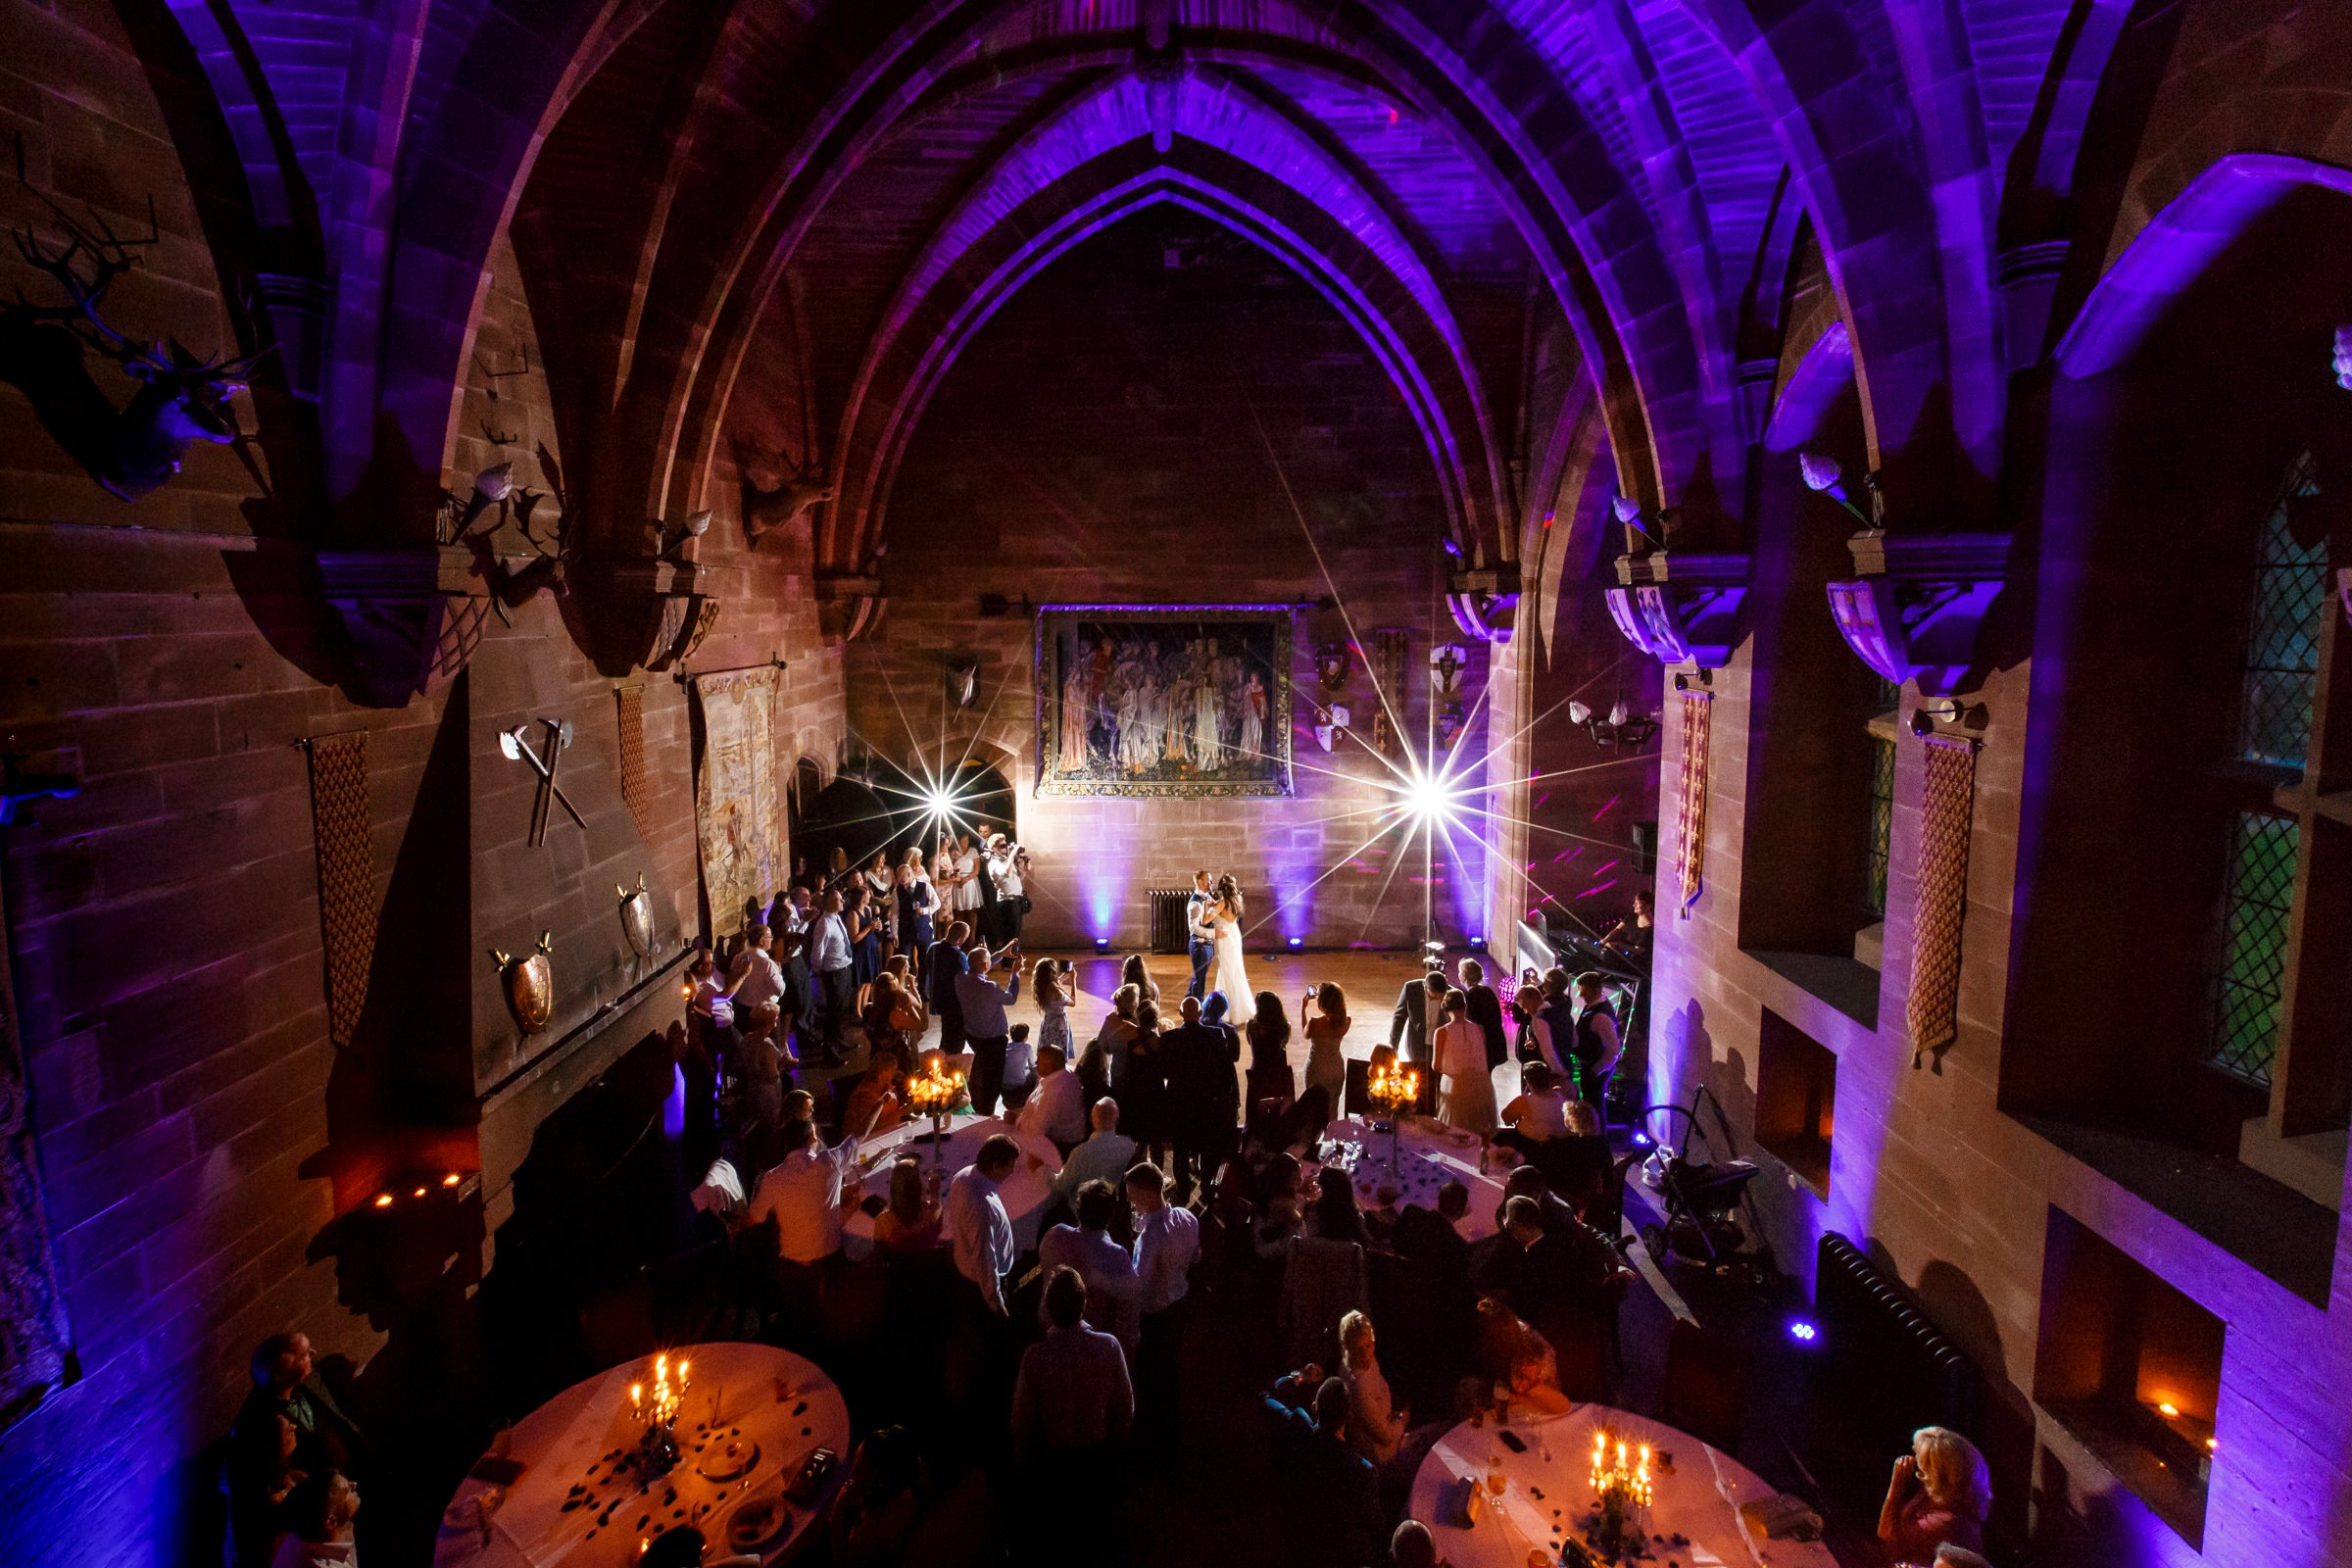 Creative wedding photography at Peckforton Castle